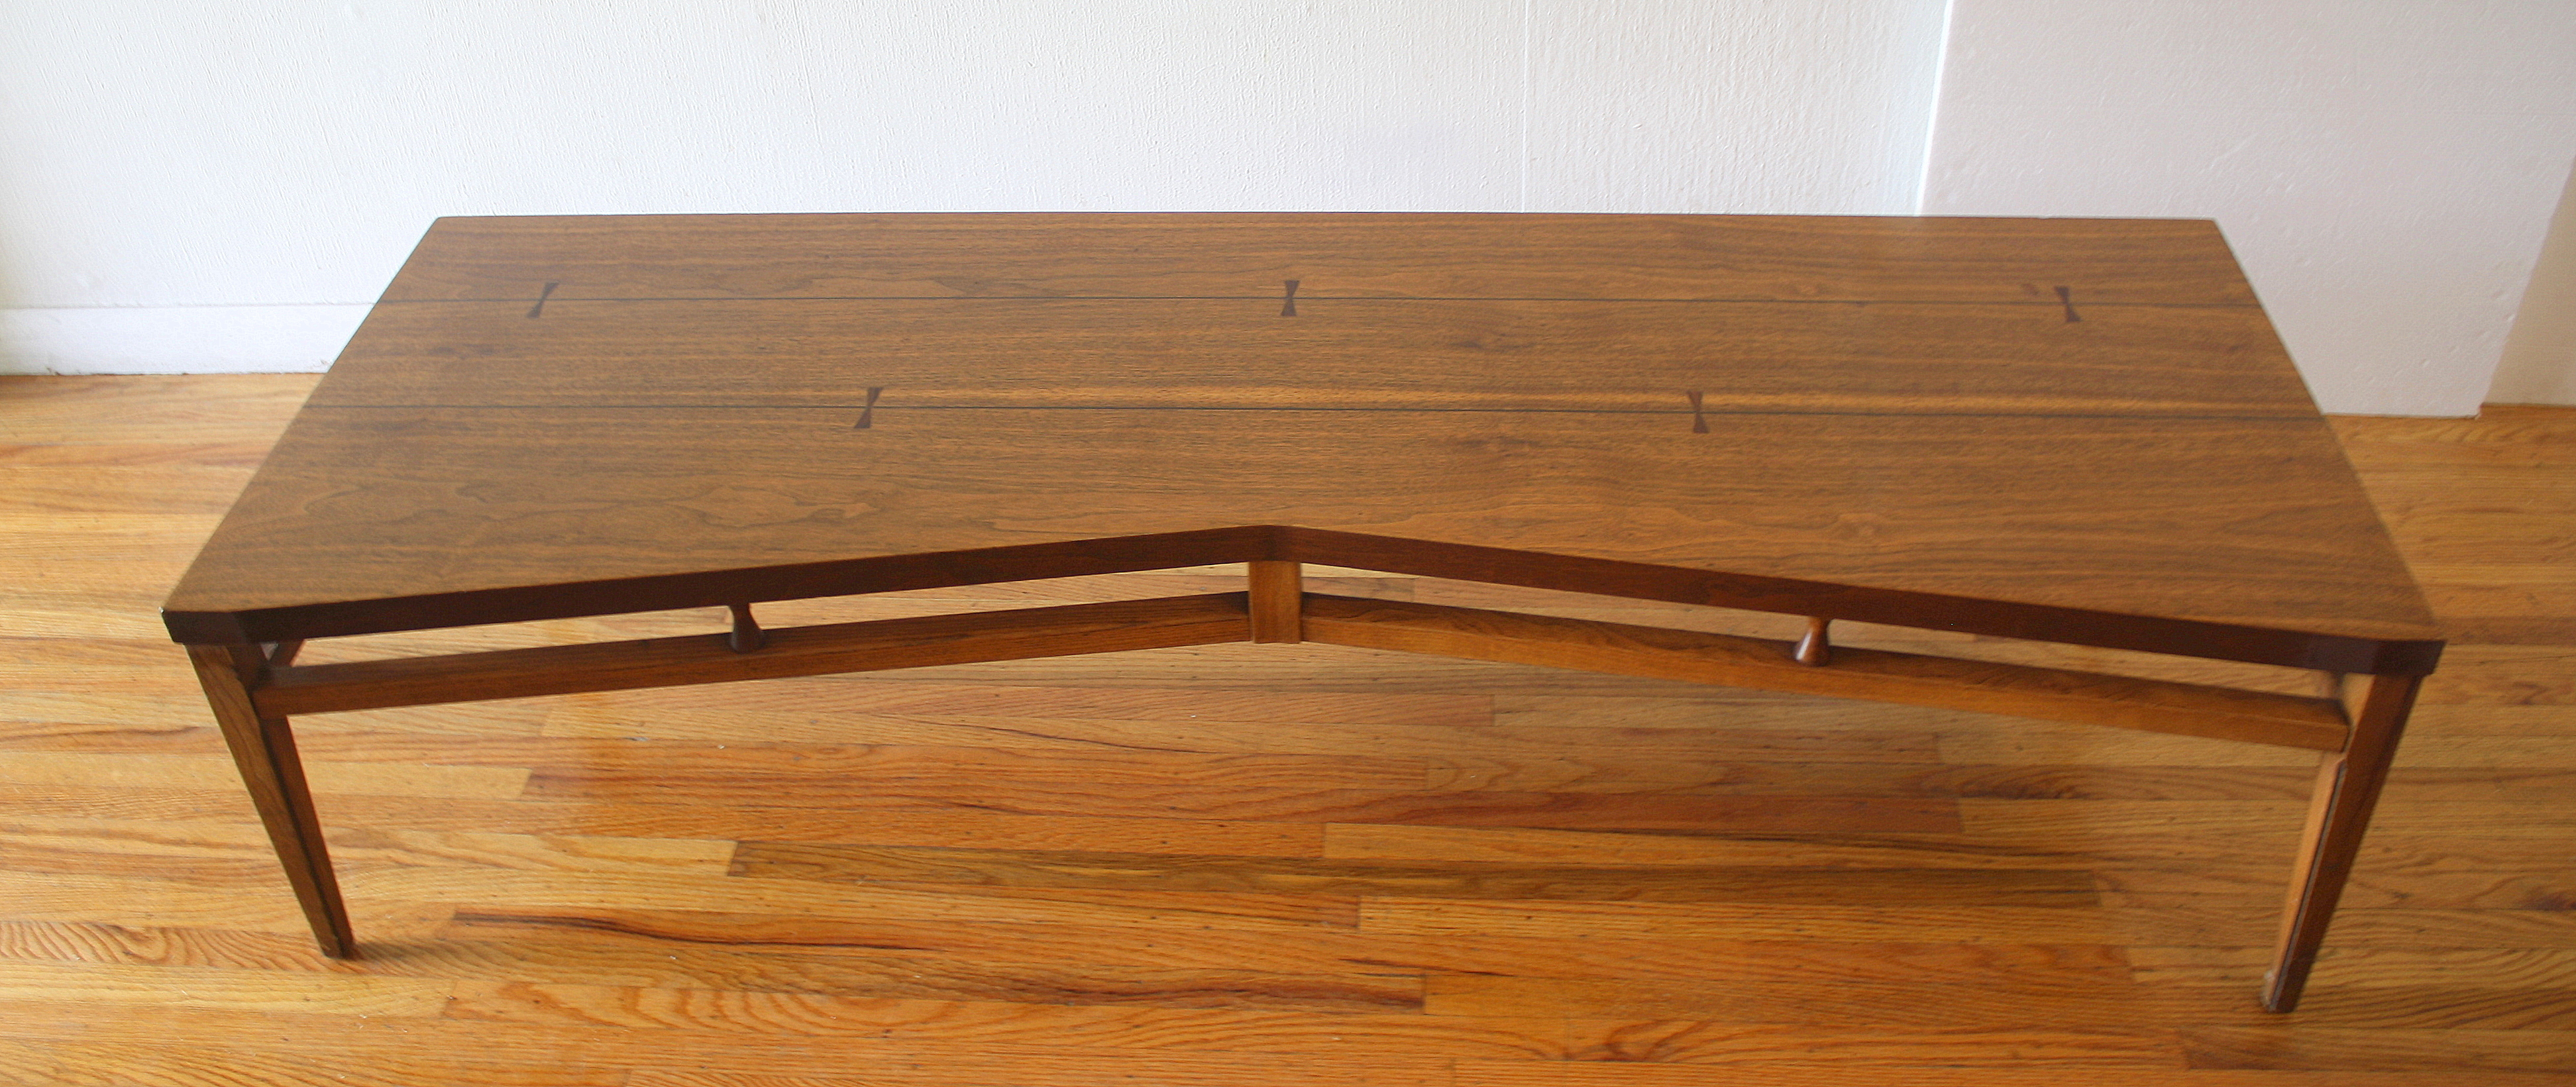 Lane Tuxedo bowtie dovetail coffee table 2